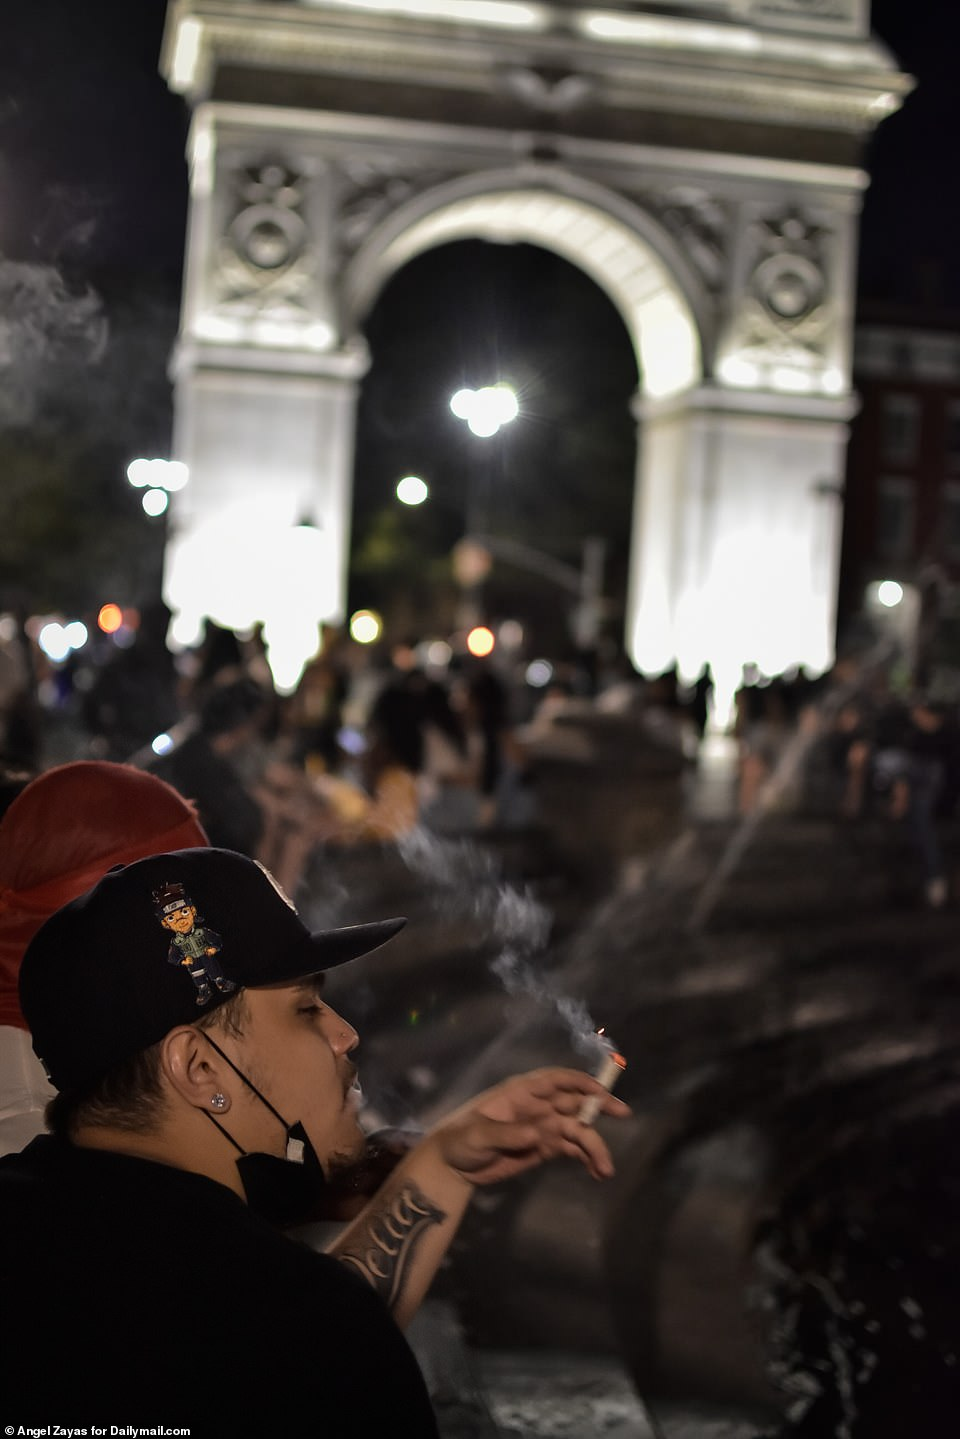 People gather inside Washington Square Park Friday night for another night of late-night revelry and drinking